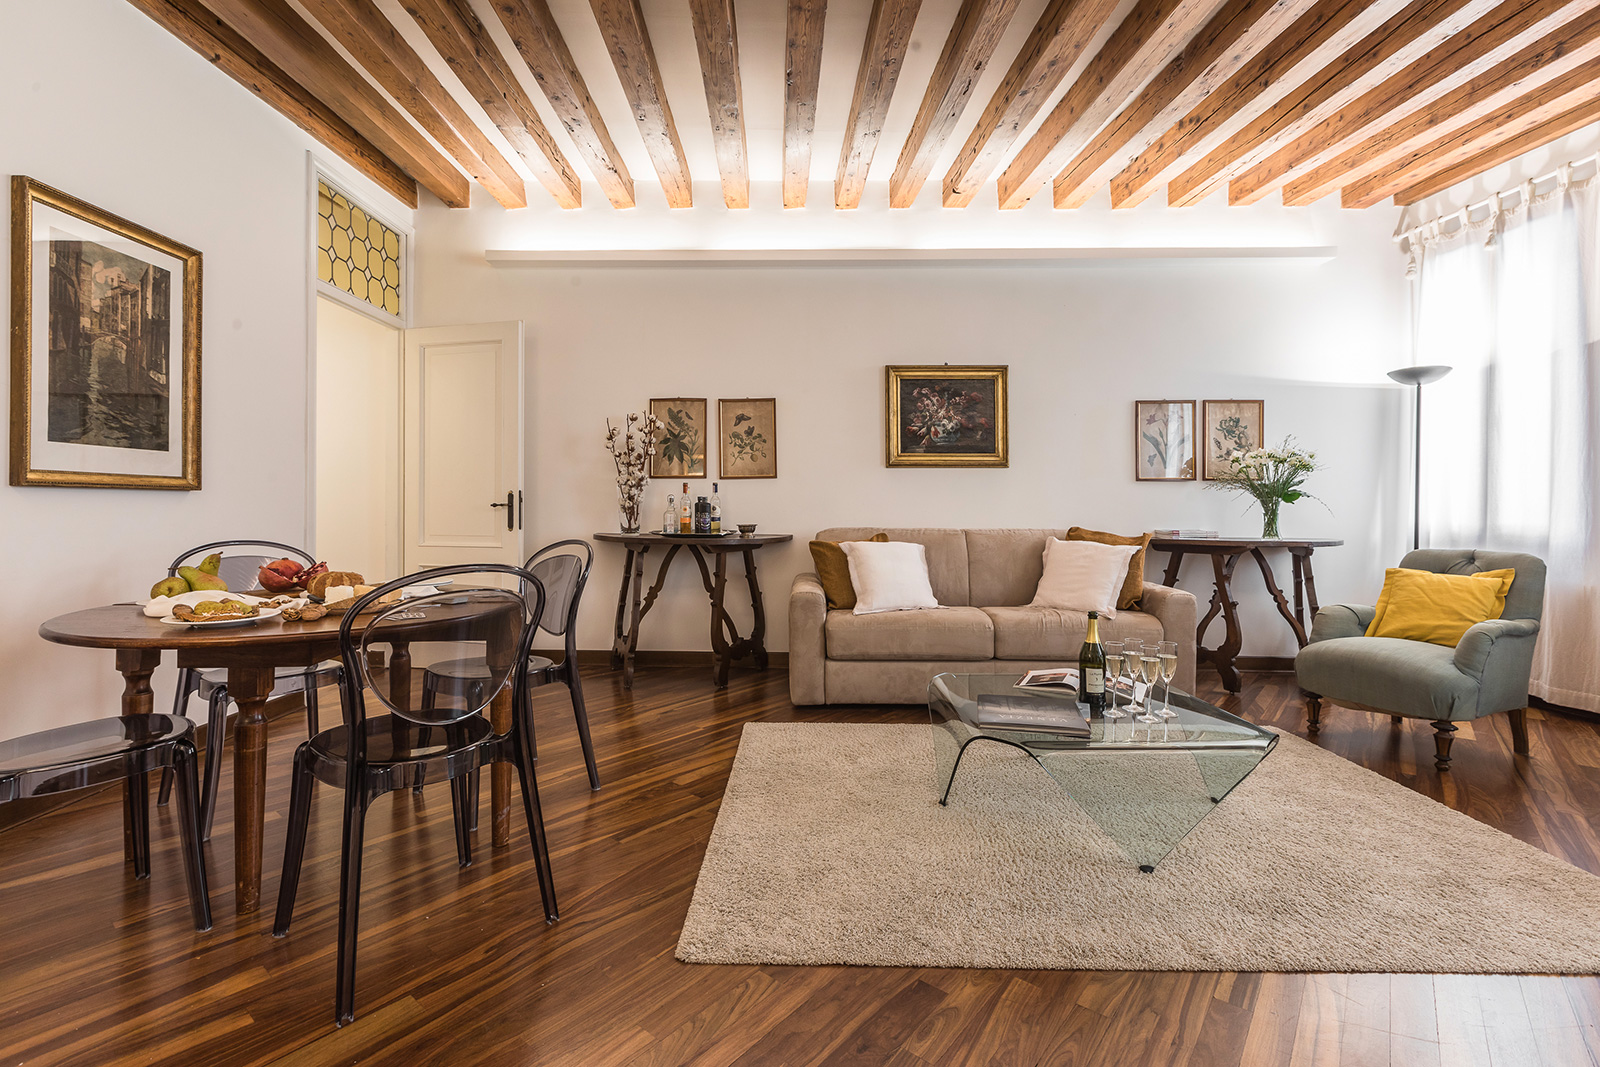 the charming living room of the Querini apartment in Venice